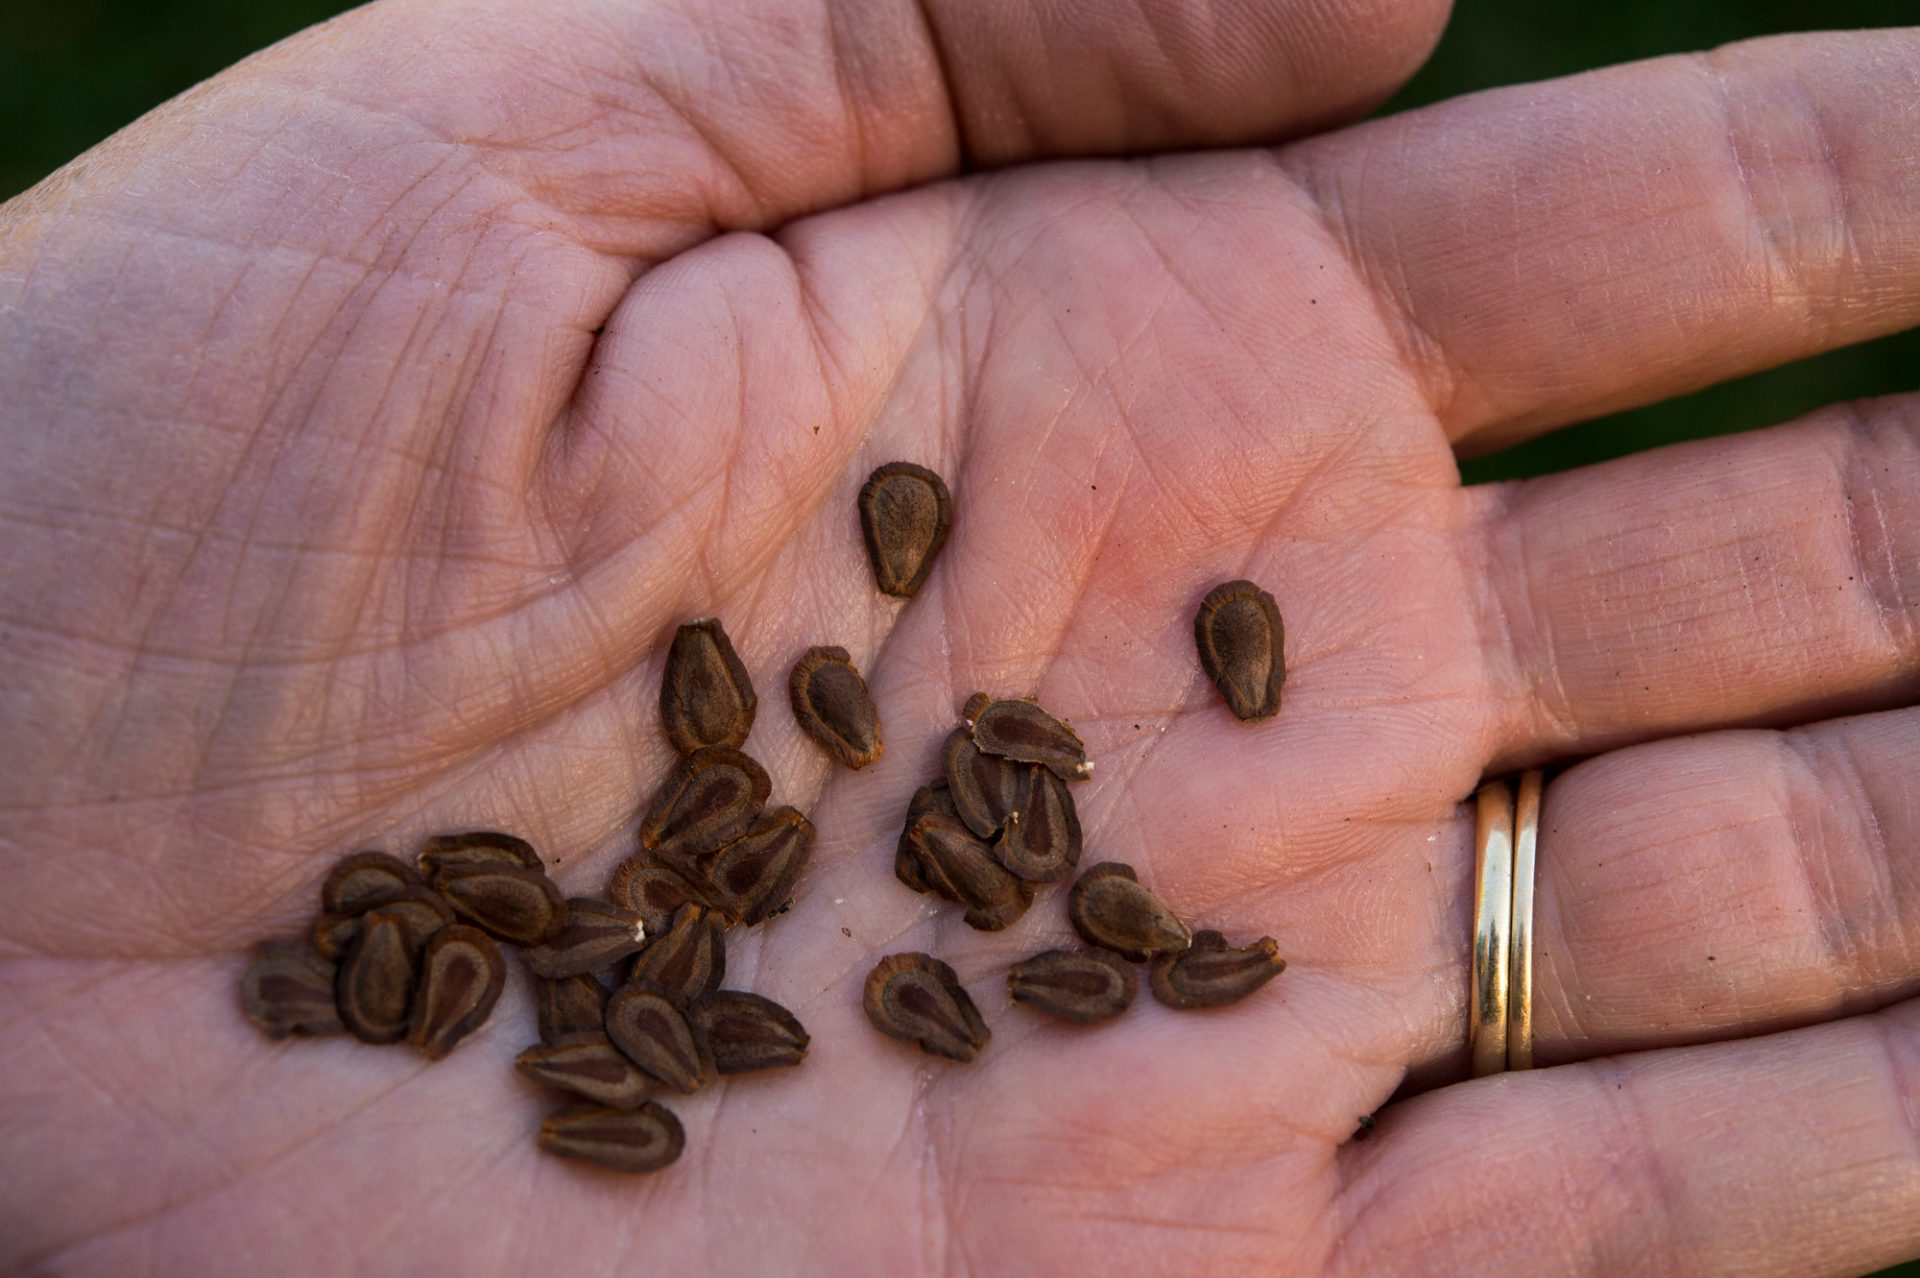 Photo: Several milkweed seeds in a woman's hand.